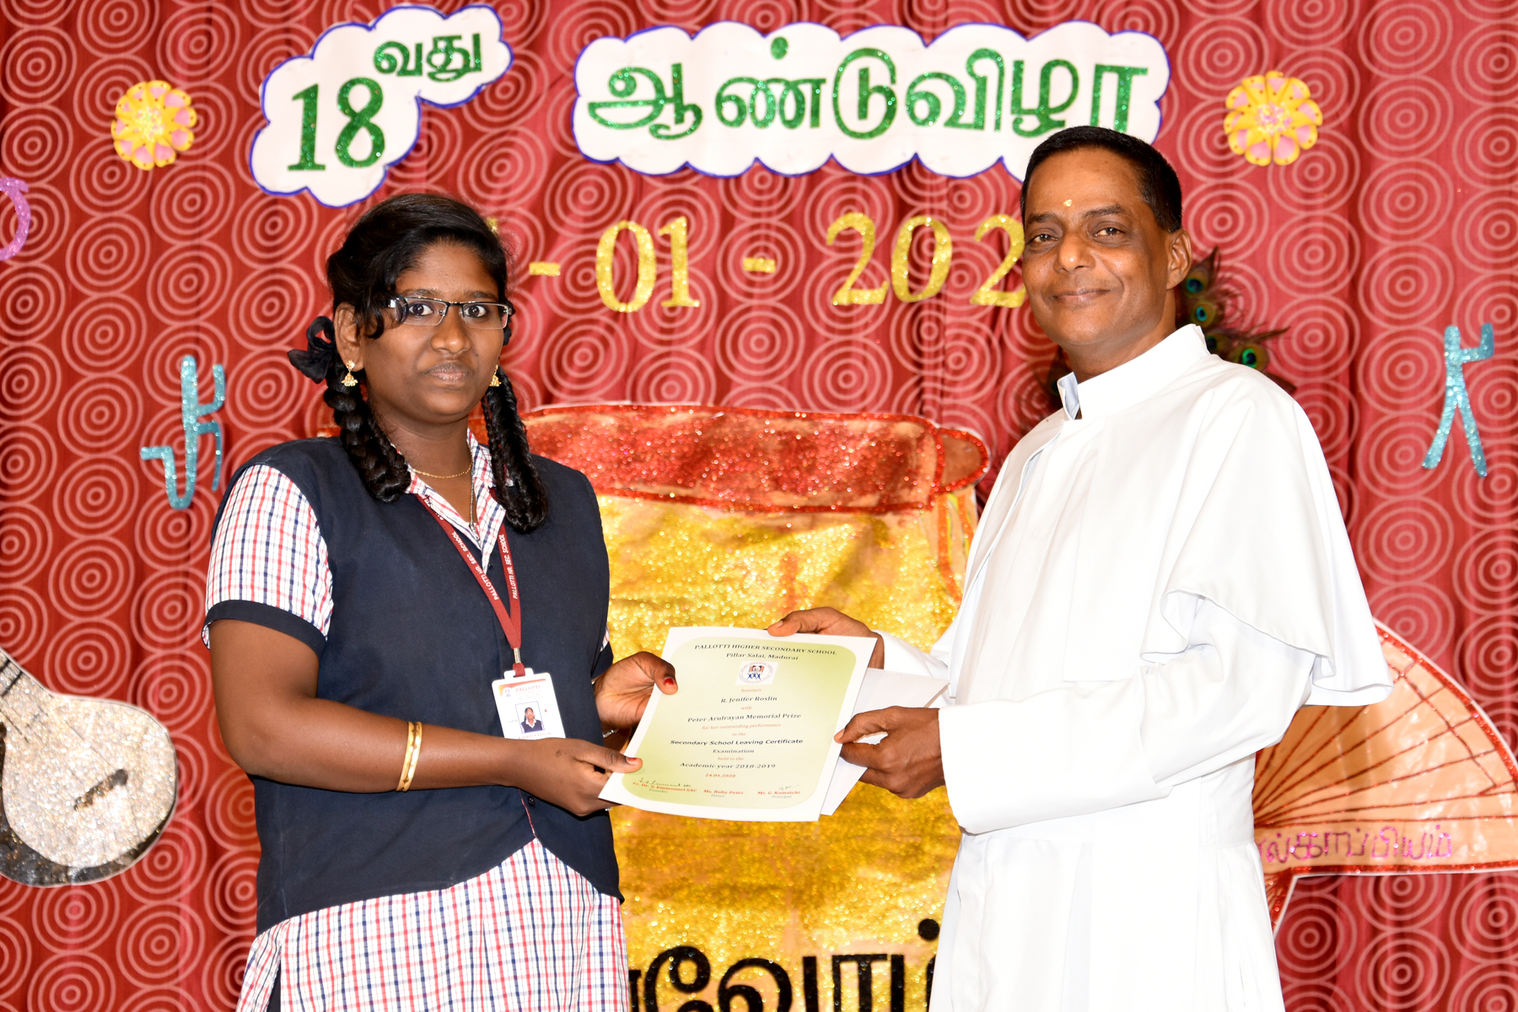 Ms. Jenifer Roslin receiving Peter Rayan Memorial Prize for her outstanding performance in the SSLC examination held in March 2019